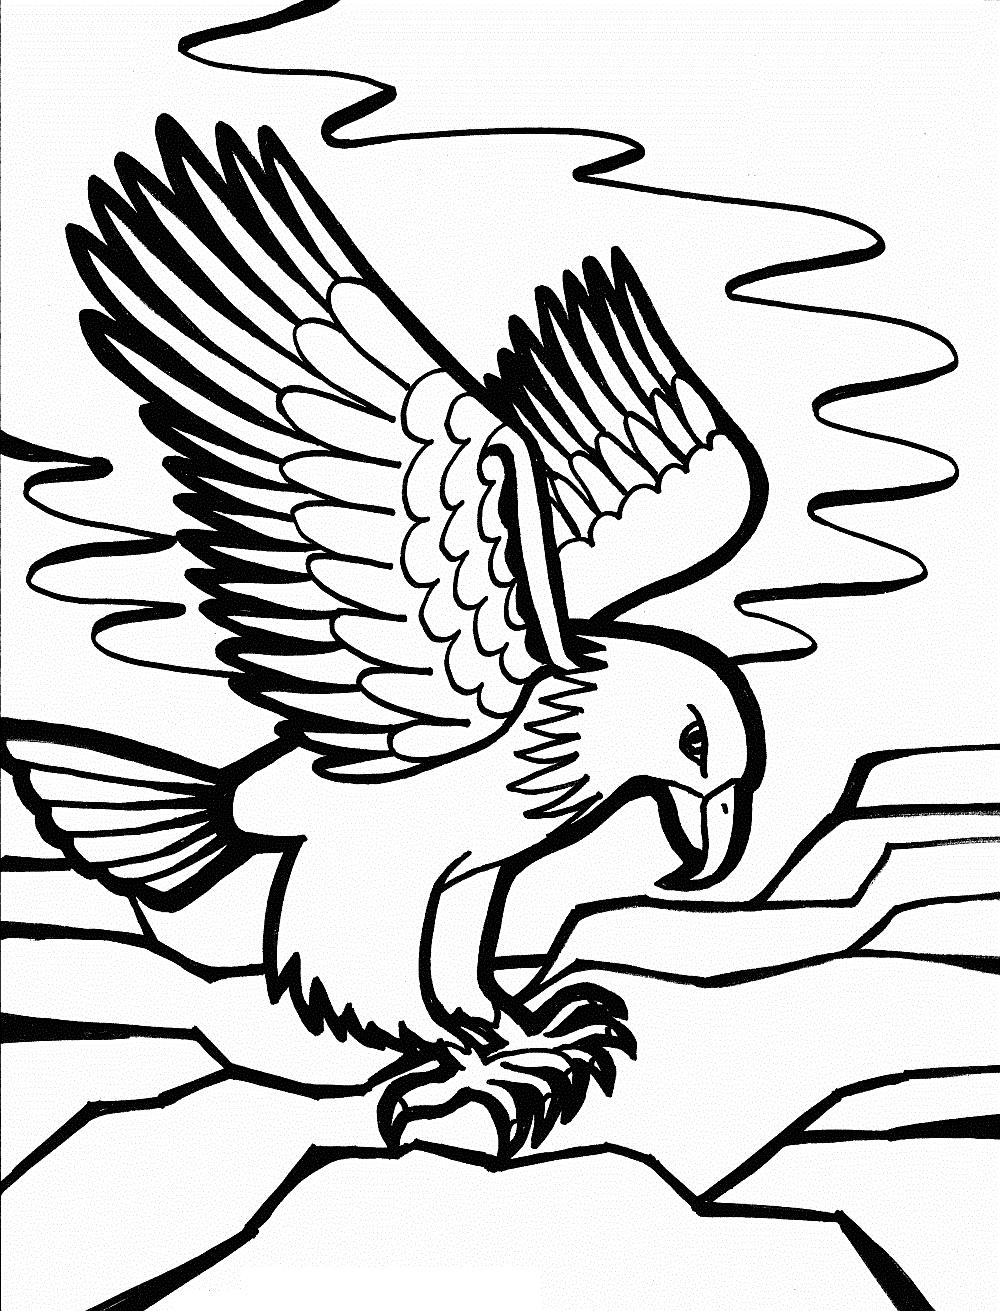 Free Bald Eagle Coloring Pages Kids School printable